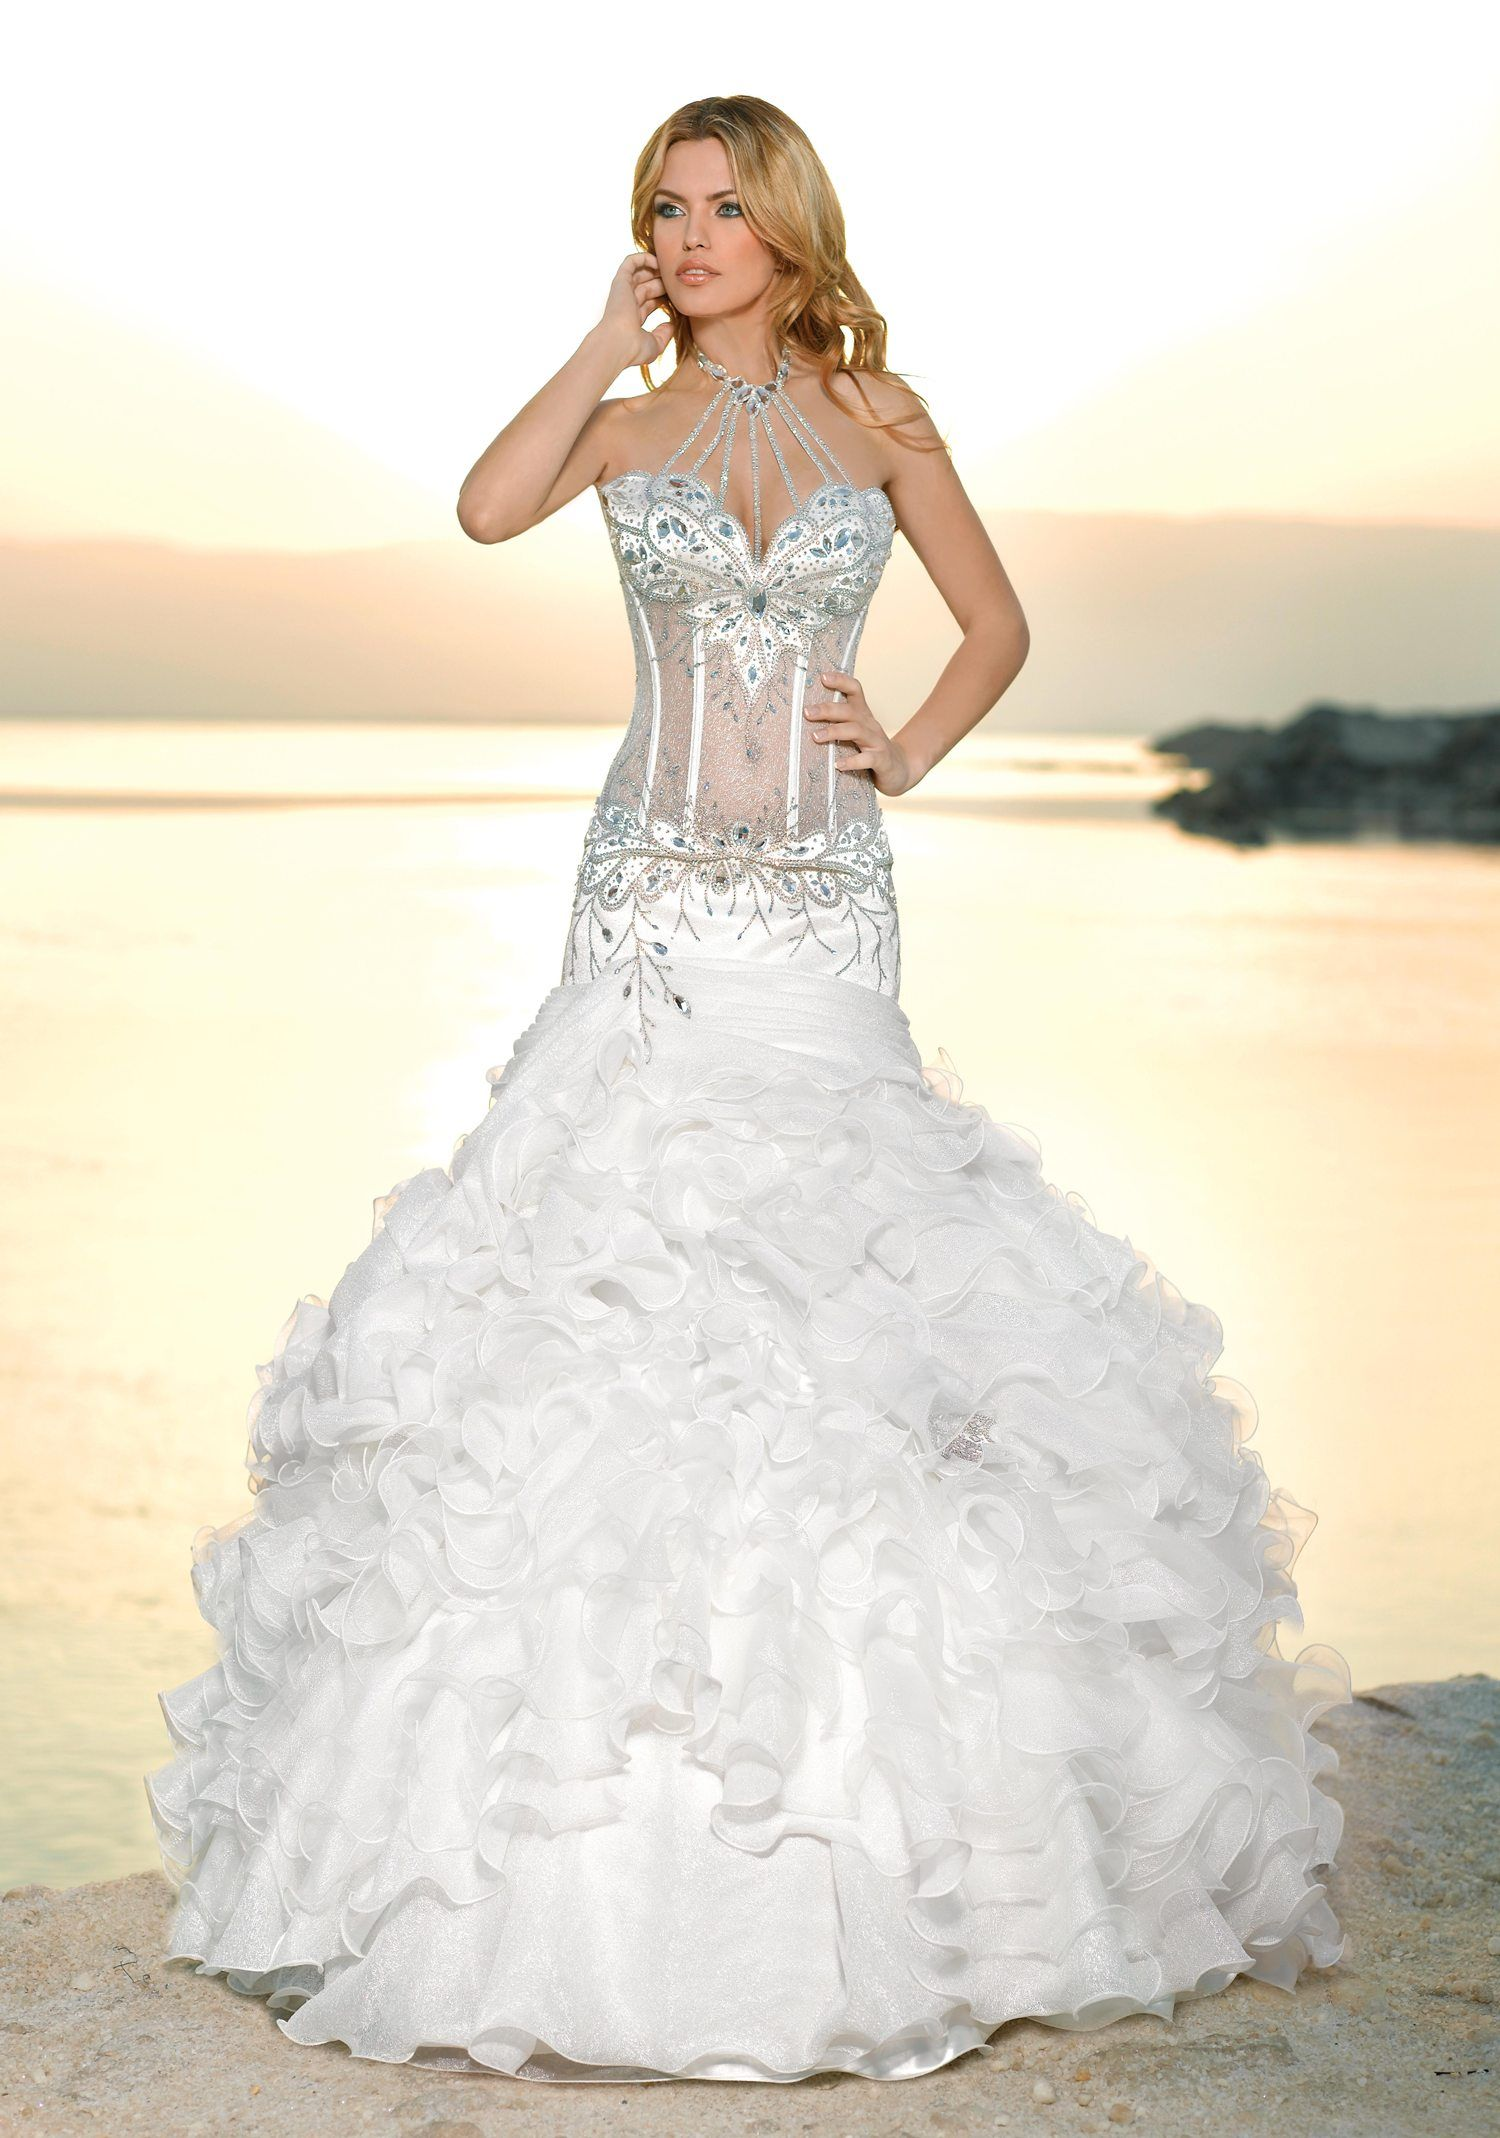 http://www.torontodresses.com/images/brides/mylady11/Lady-May-Lady ...